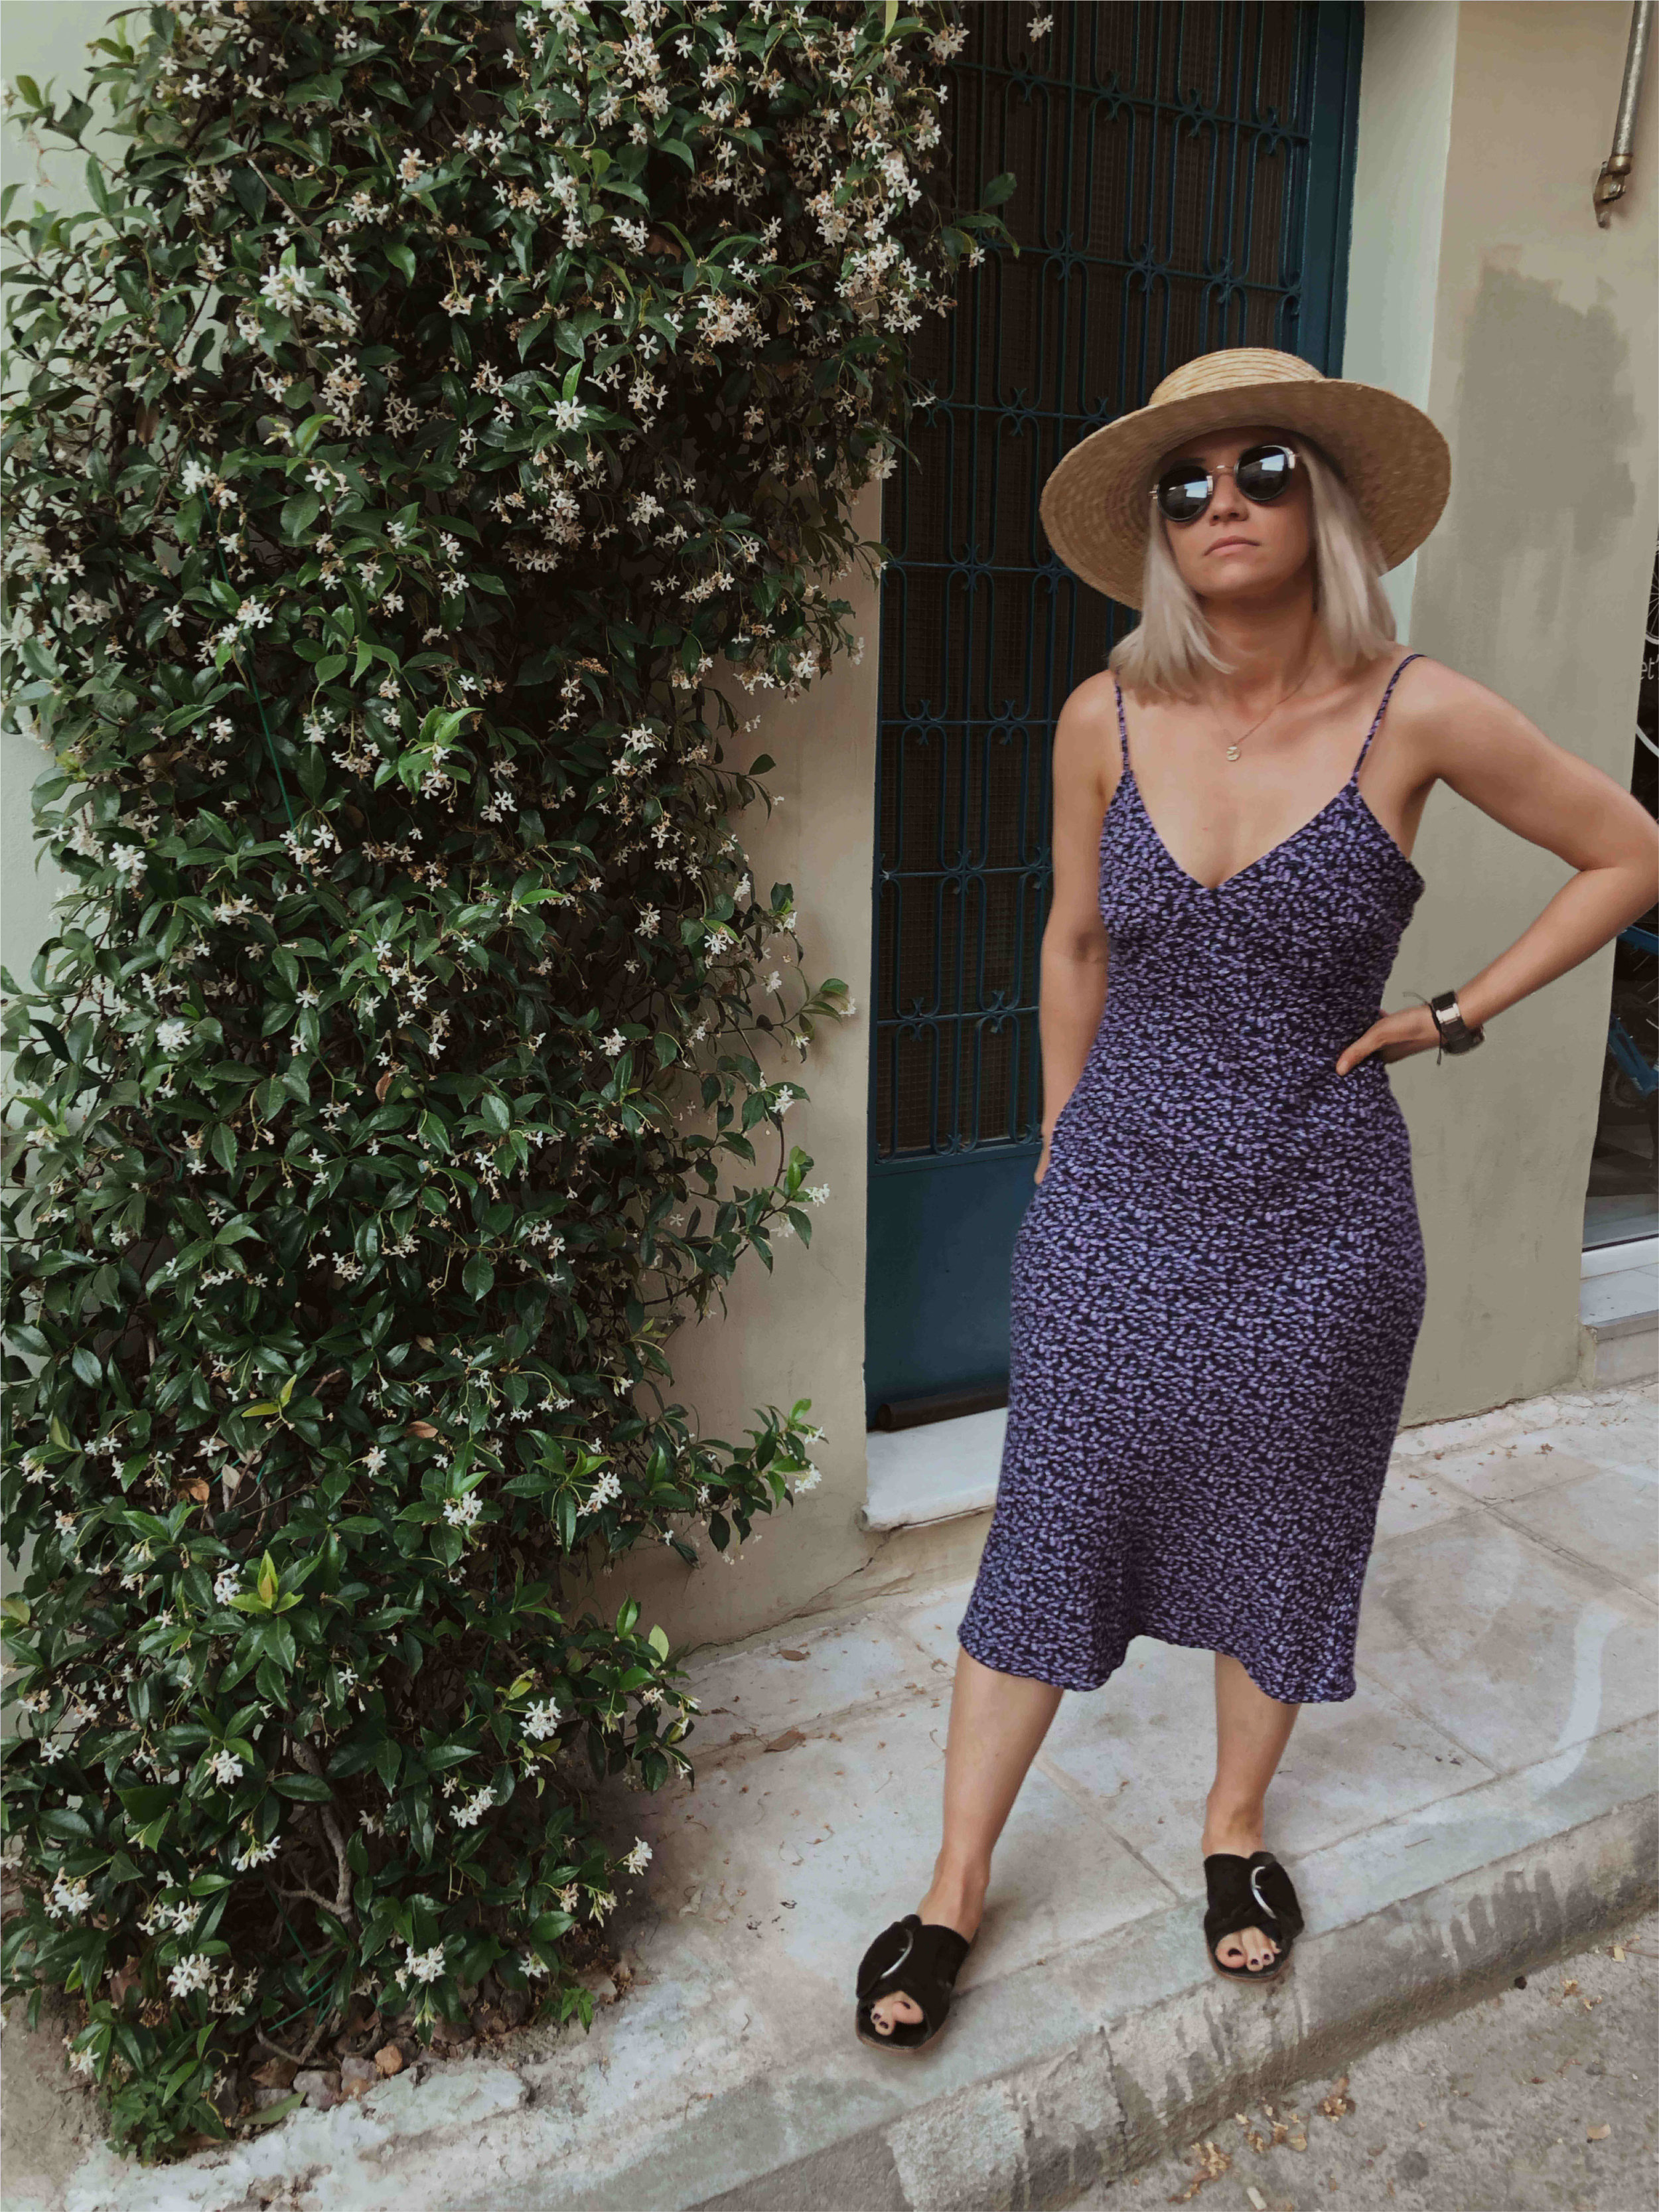 Day trip to Athens, in a vintage slip dress with a straw hat, northern magpie, joey taylor 1